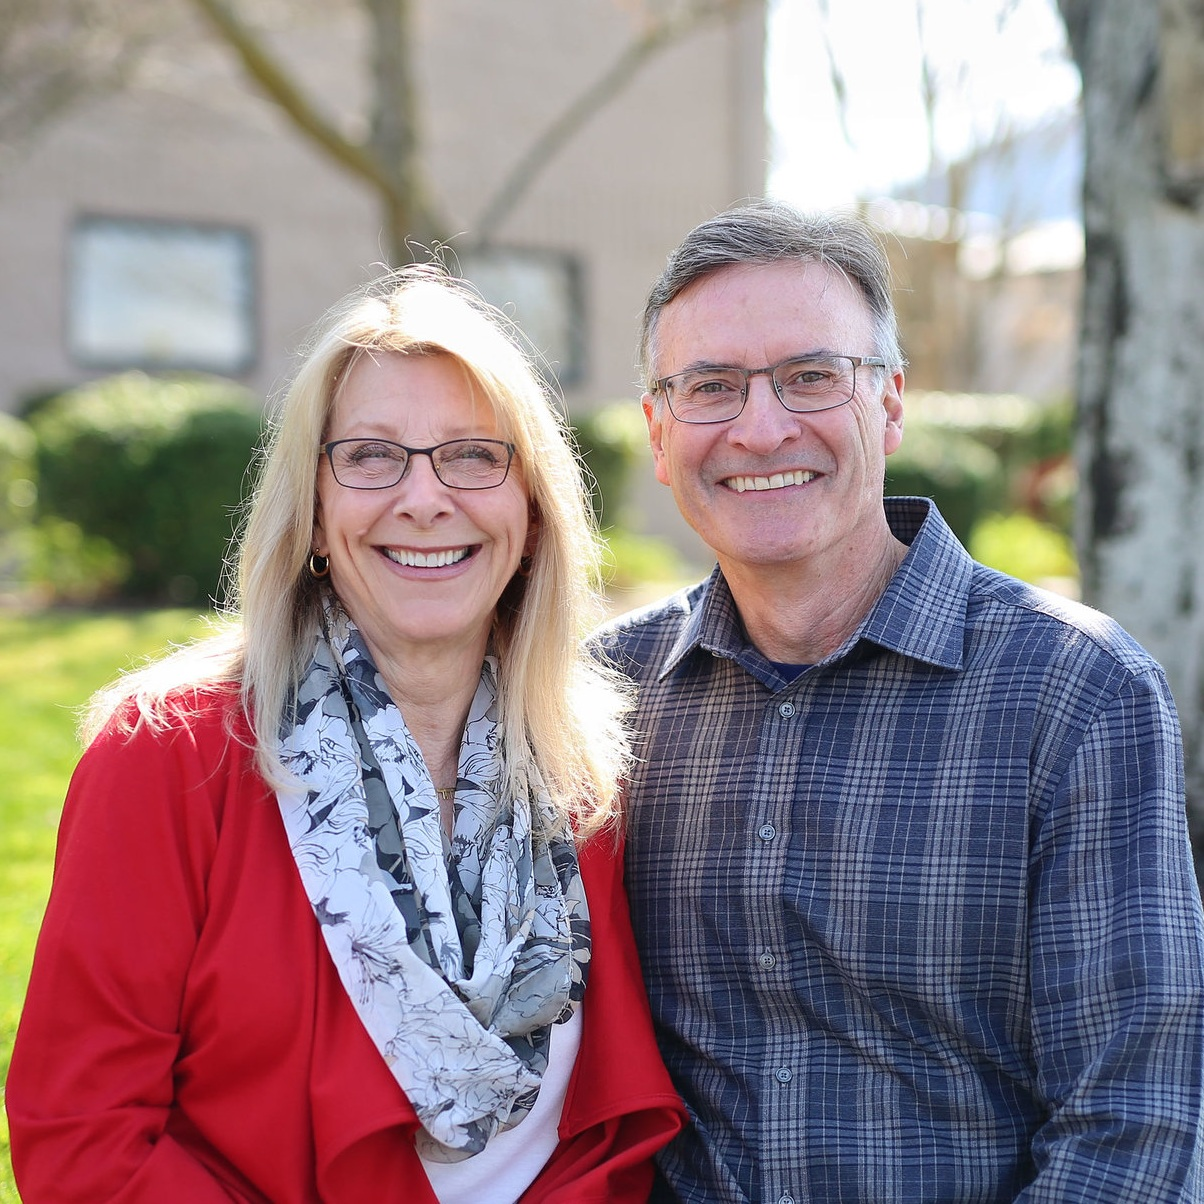 Steve & Robyn Elam - Steve serves in the Hospitality and Financial Stewardship ministries. Robyn serves on one of the Worship Teams and is a volunteer women's chaplain at the Gospel Rescue Mission. Together they serve in the Marriage Mentoring ministry.